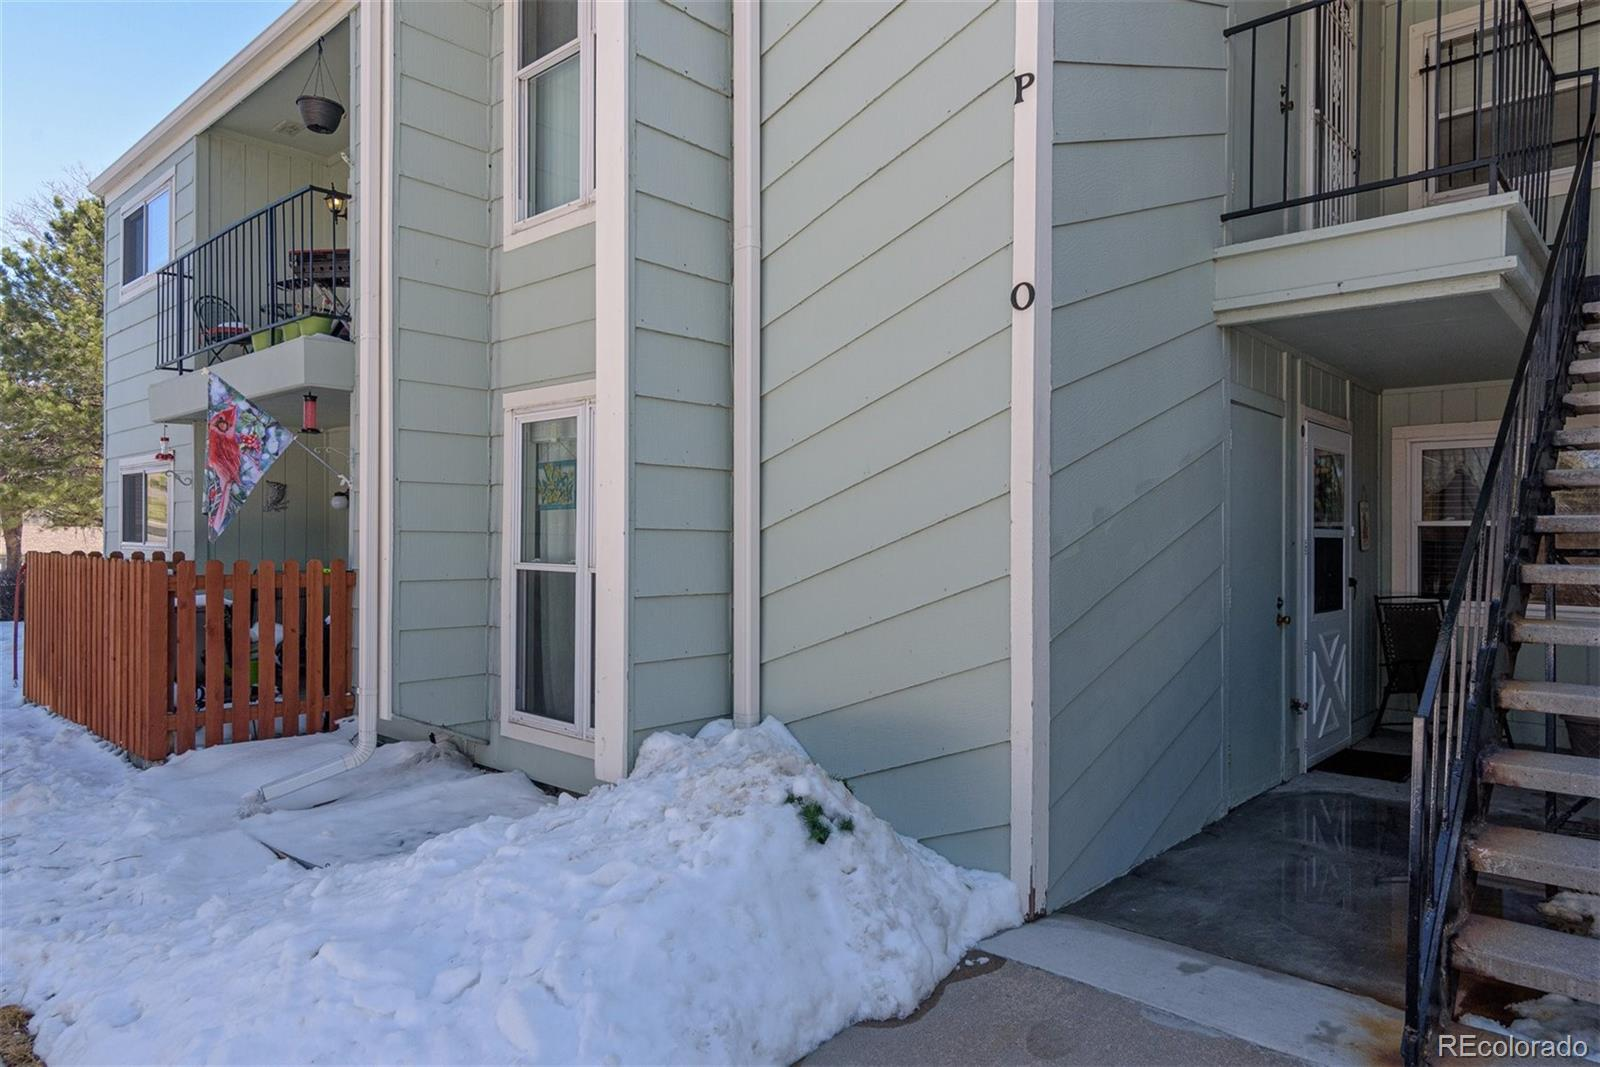 Cute & cozy ground level condo in amazing location! *  No steps!! * Short walk to Southglenn Mall, King Soopers, shoppes/restaurants, and Arapahoe High School * One-car detached garage (#63) with newer garage door * Newer windows throughout * Furnace & A/C 7 yr old * Microwave, dishwasher & disposal 1 yr old * All appliances stay, incl W & D * Upgraded bathrooms with new toilets, lights, vanity, tile floors * Eat-in space in kitchen * Wood-burning fireplace in LR * LOTS of storage with multiple closets, walk-ins * Spacious exterior storage closet by front door * Extra large LR area (wall can easily be added to make third BR) * Nicer view of green & landscaped common area.